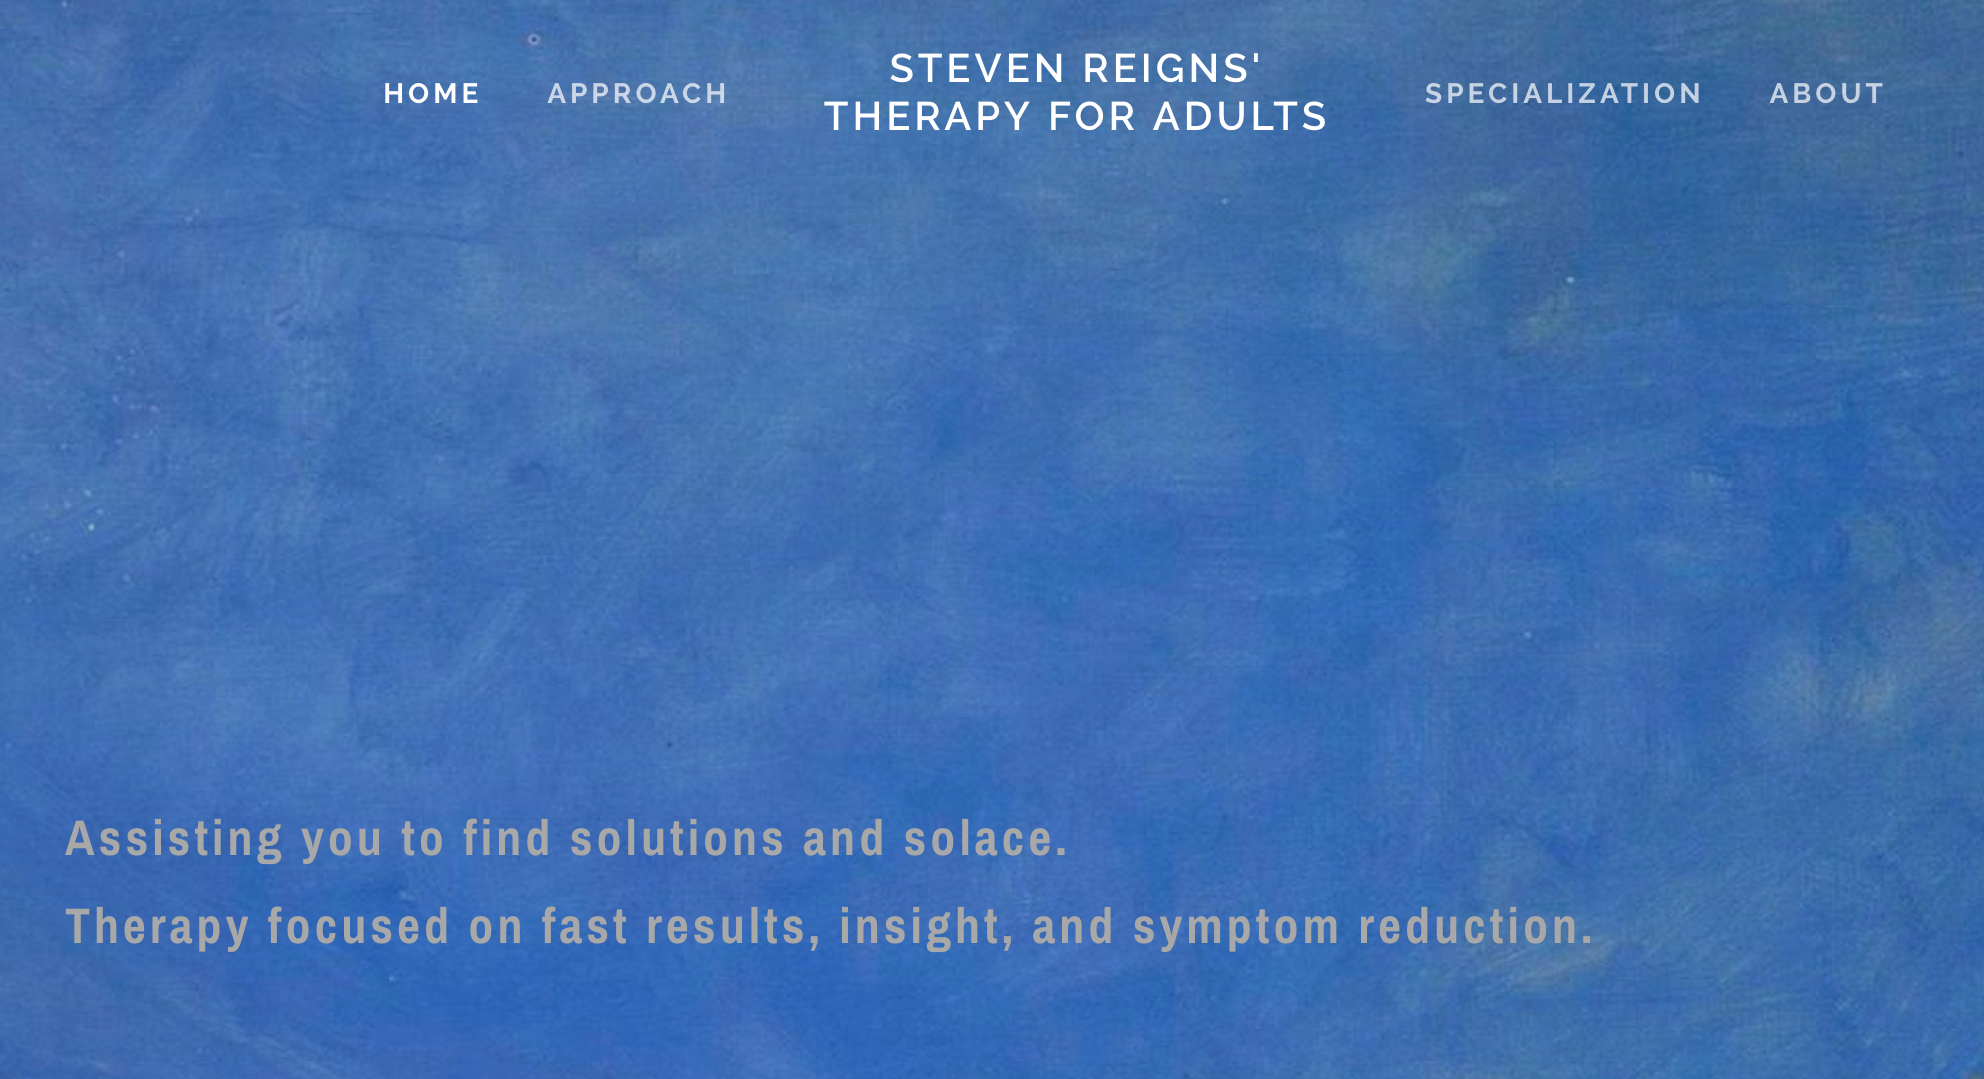 Website: Therapy For Adults - Learn about therapy with Steven Reigns